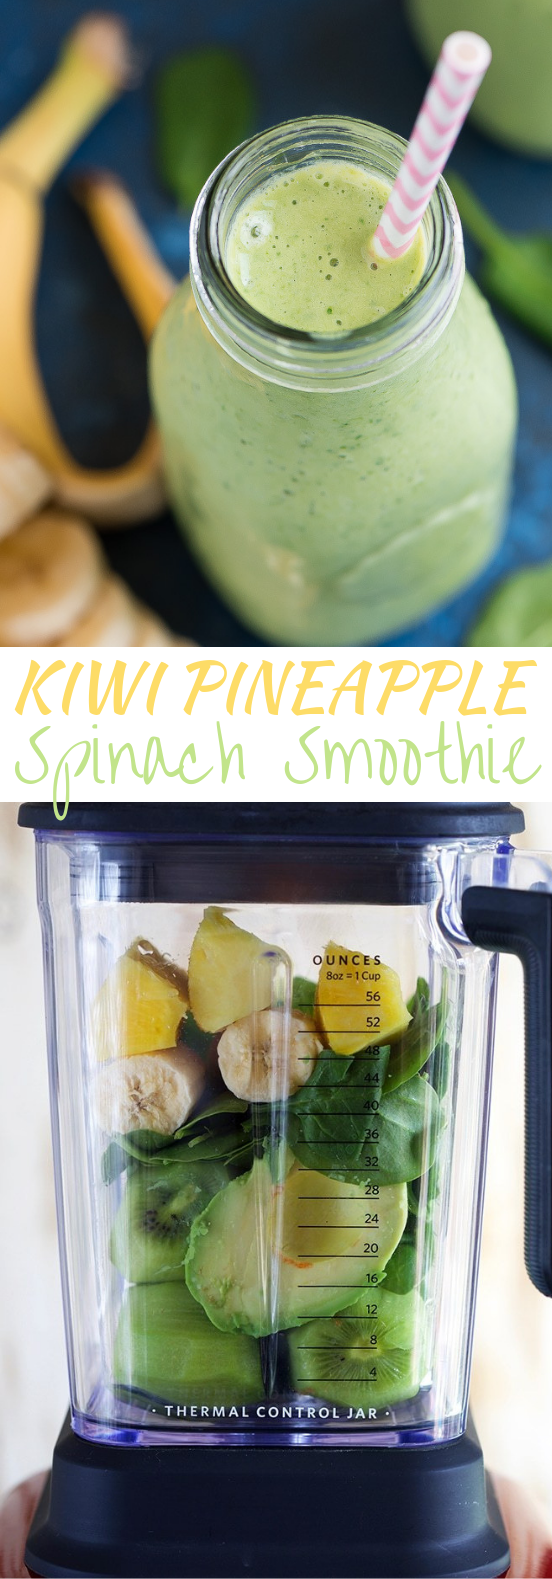 Kiwi Pineapple Spinach Smoothie #drinks #smoothies